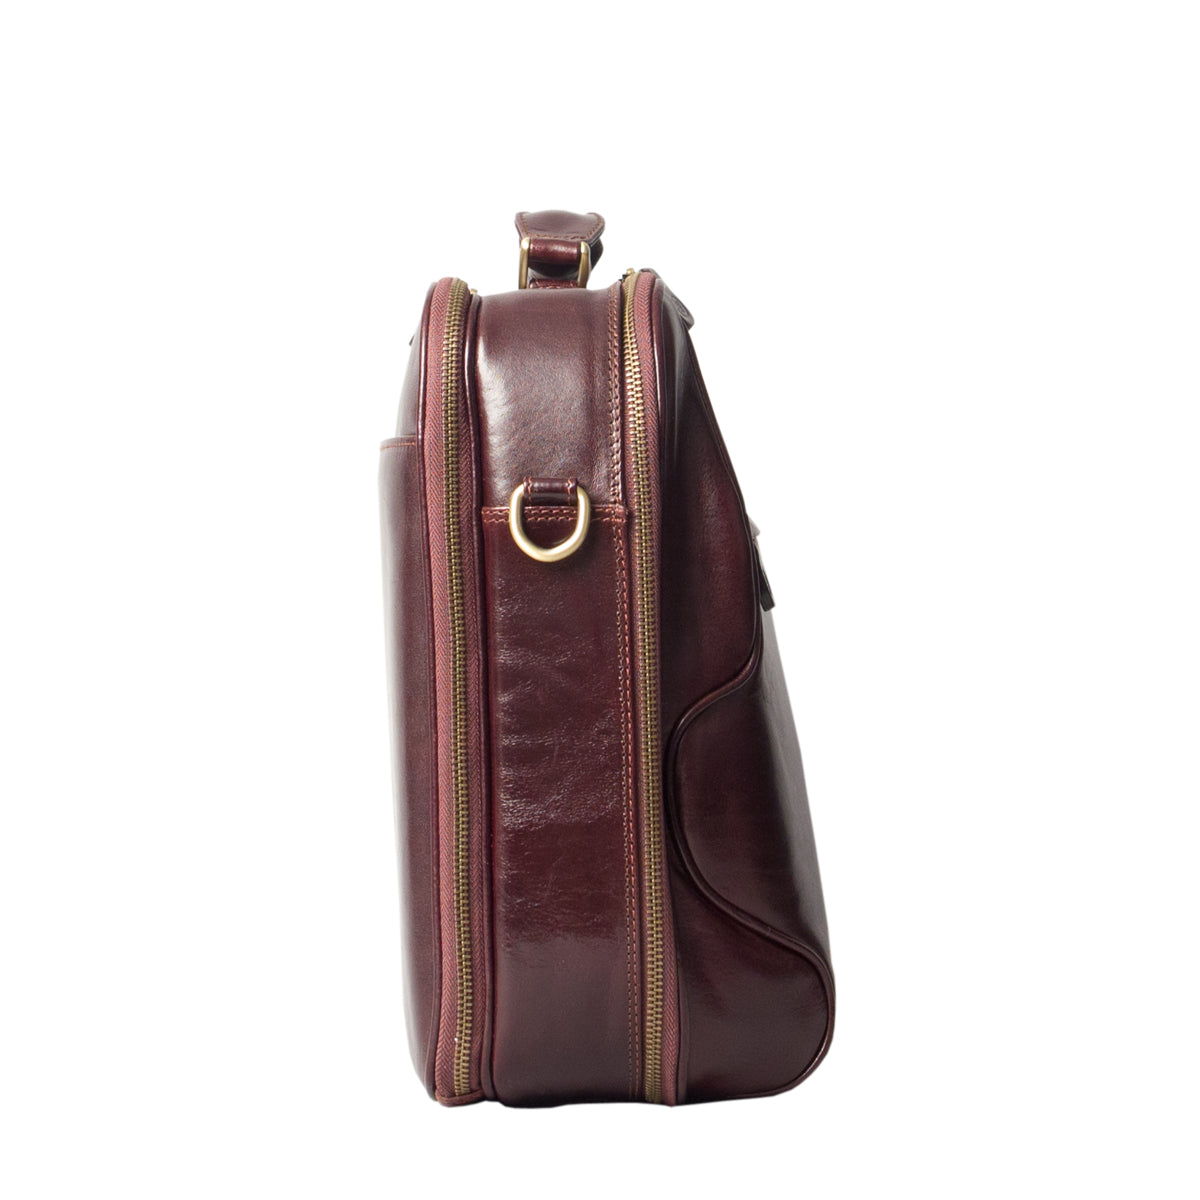 Image 3 of the 'Volterra' Brown Veg Tanned Leather Laptop Case